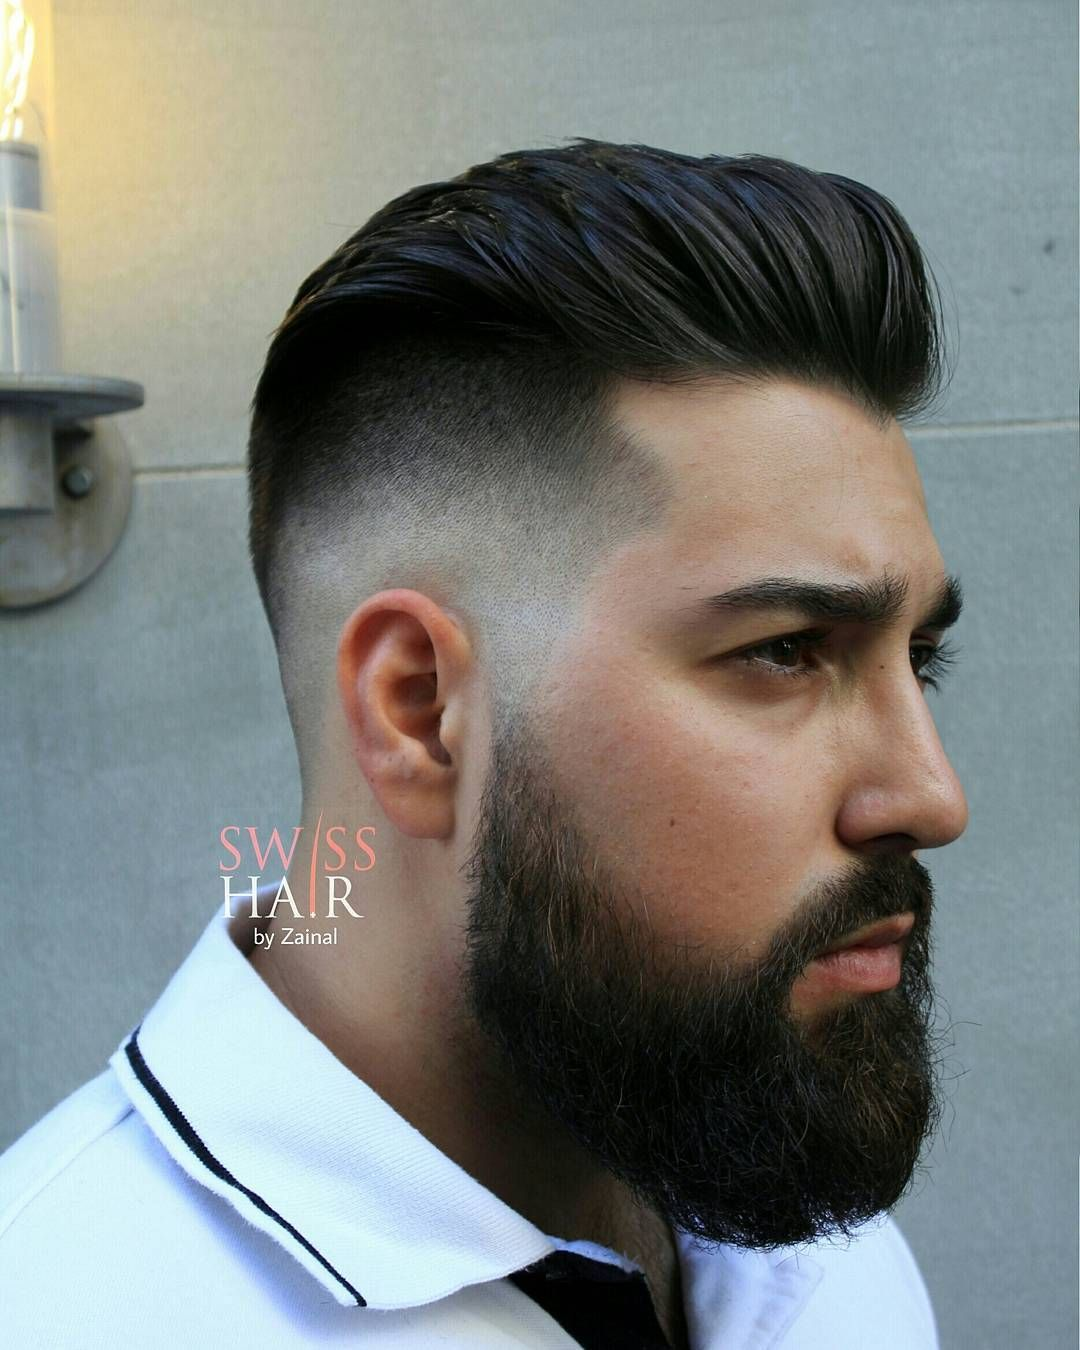 Hairstyles For Thick Hair Men Classy 15 New Haircuts  Hairstyles For Men With Thick Hair  Pompadour